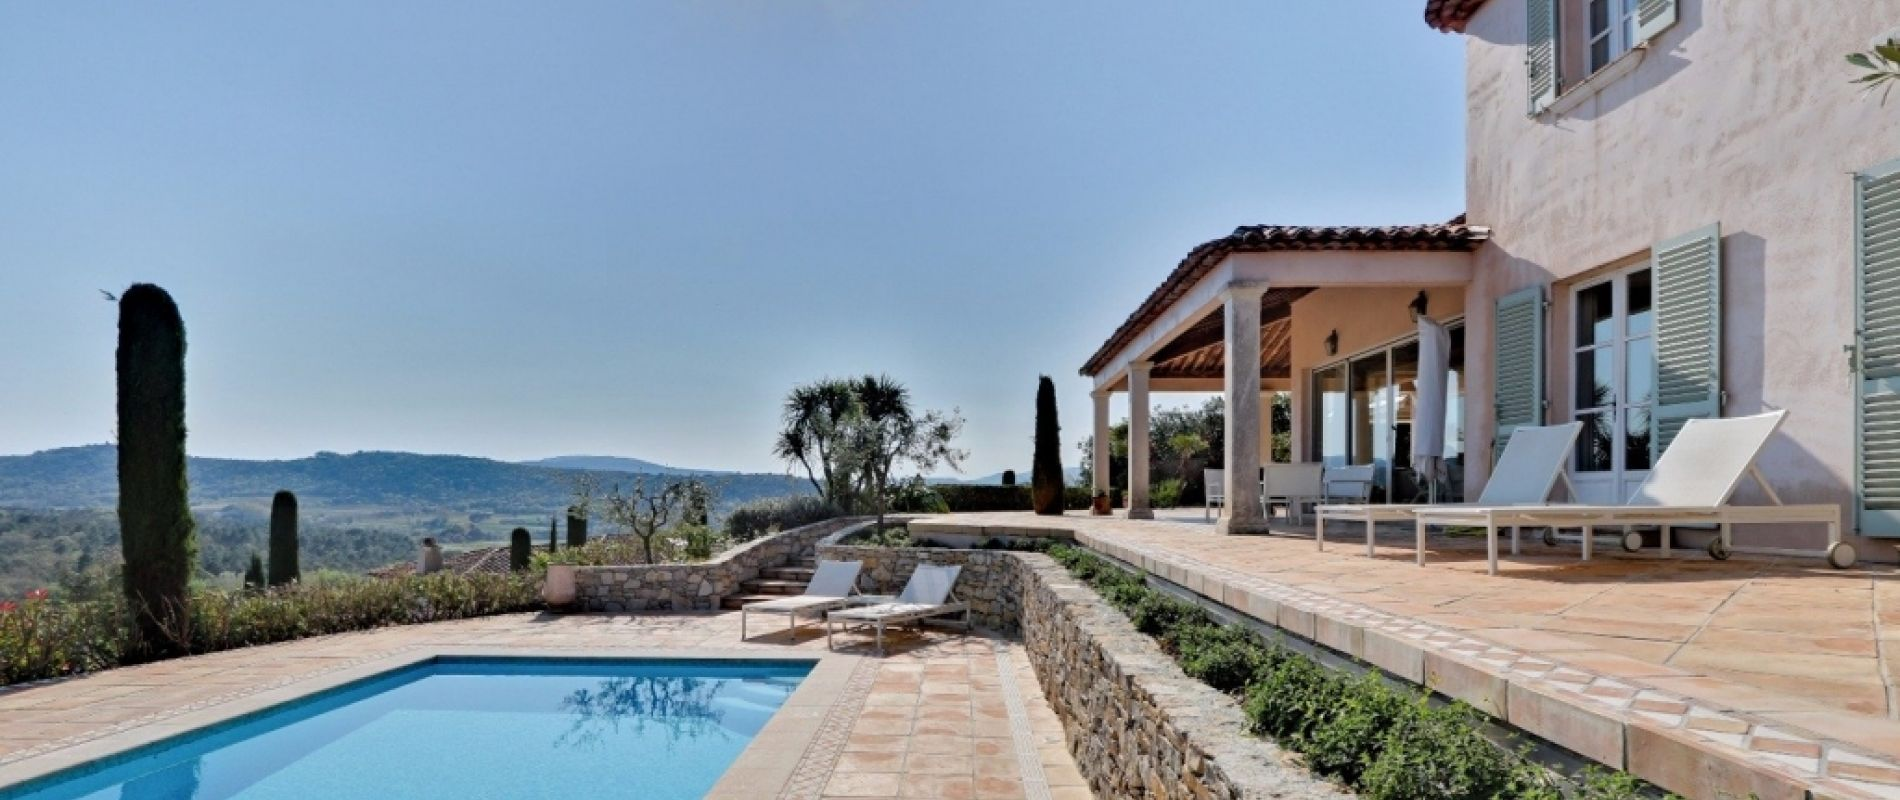 villa saint tropez golf